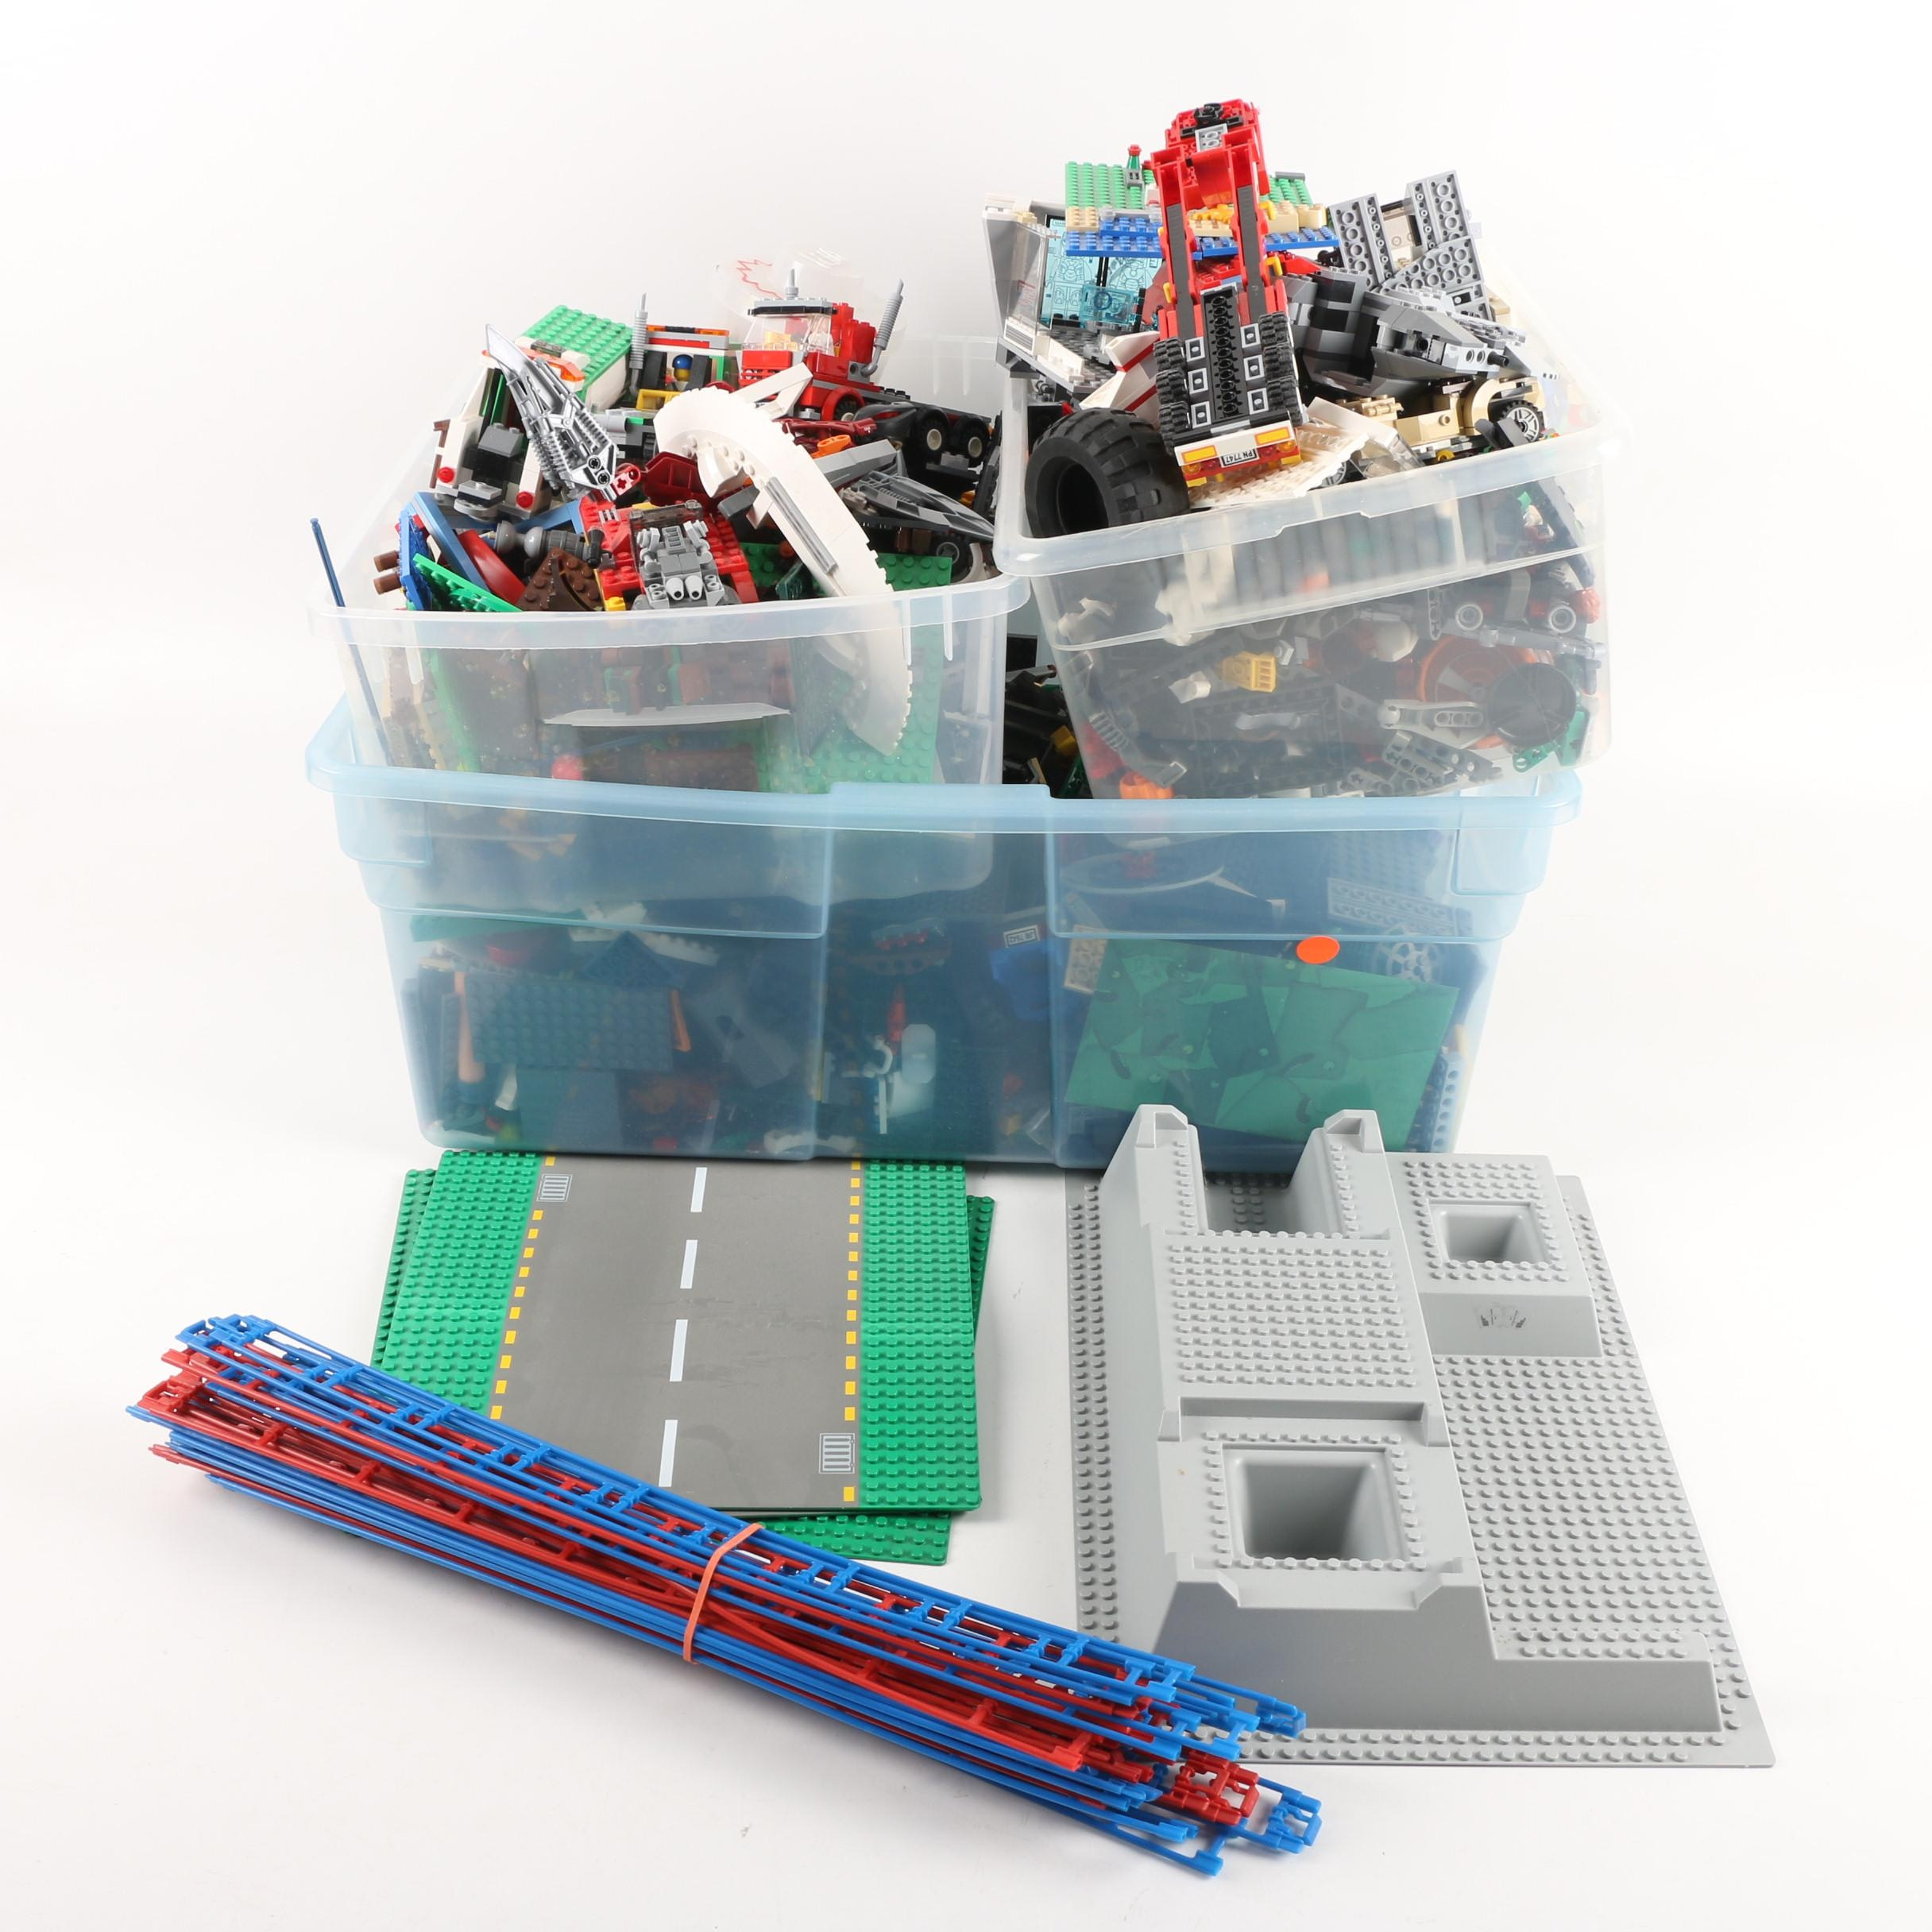 LEGO Collection Including Baseplates